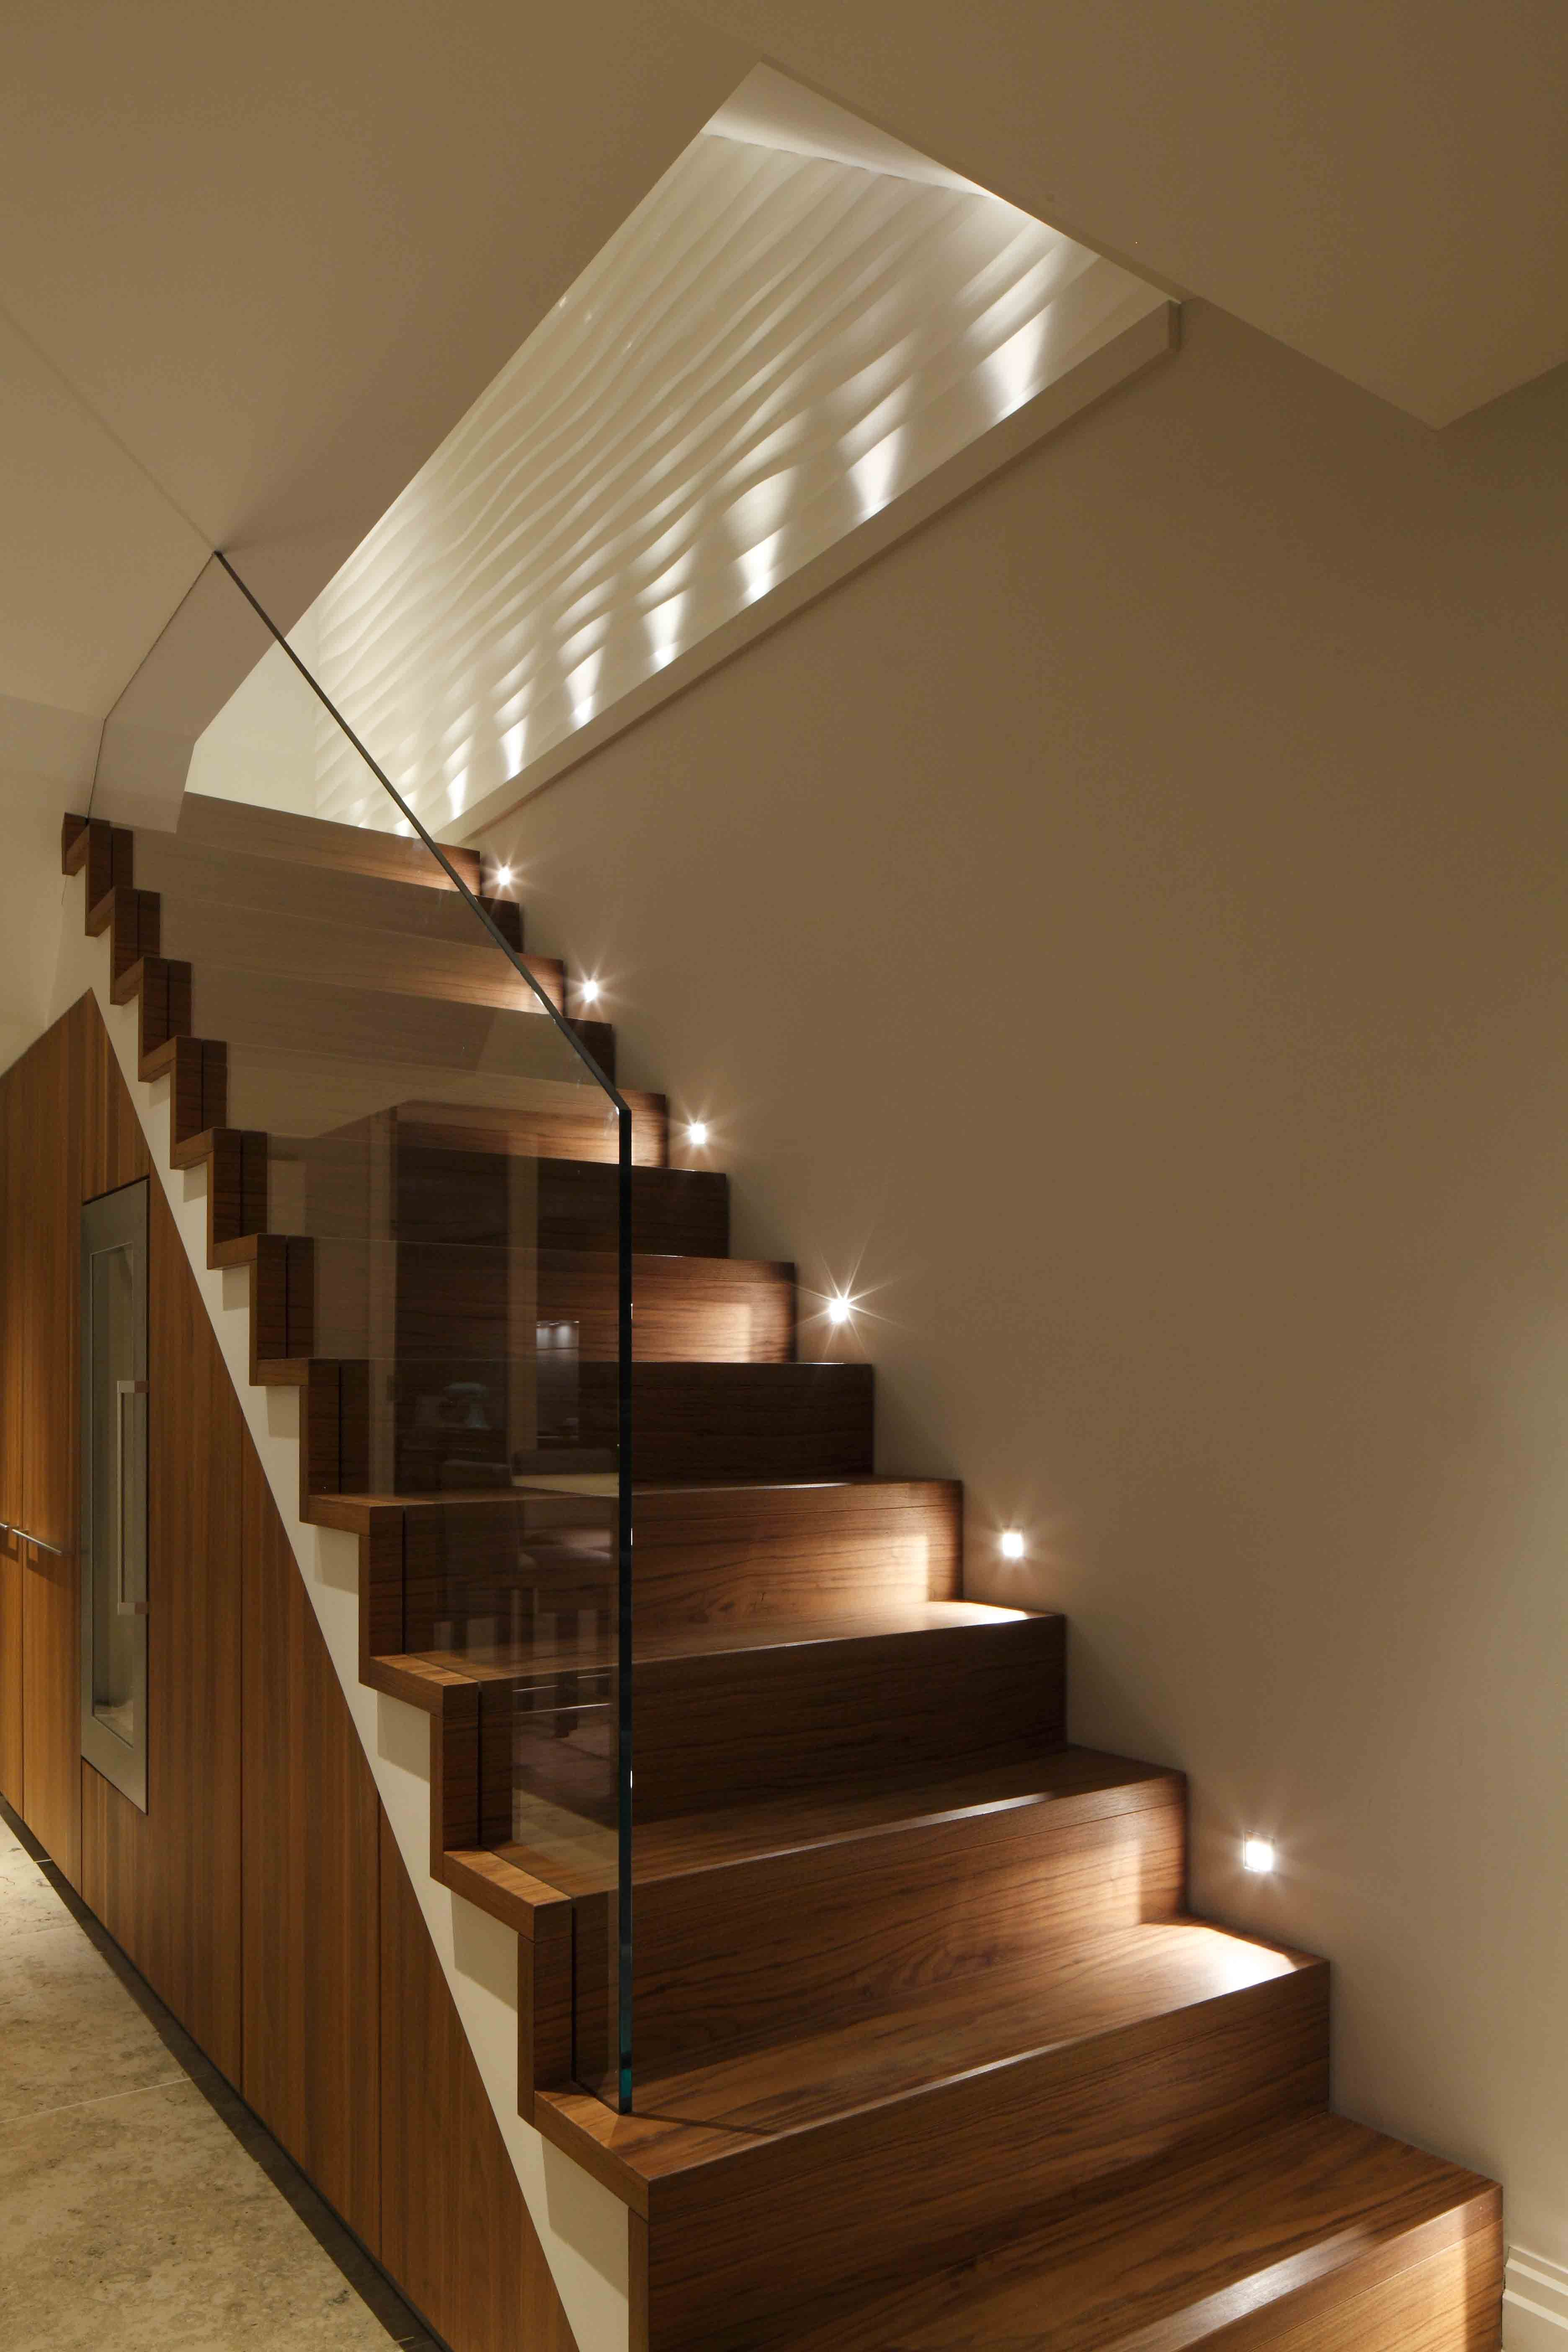 17 Light Stairs Ideas You Can Start Using Today Design De